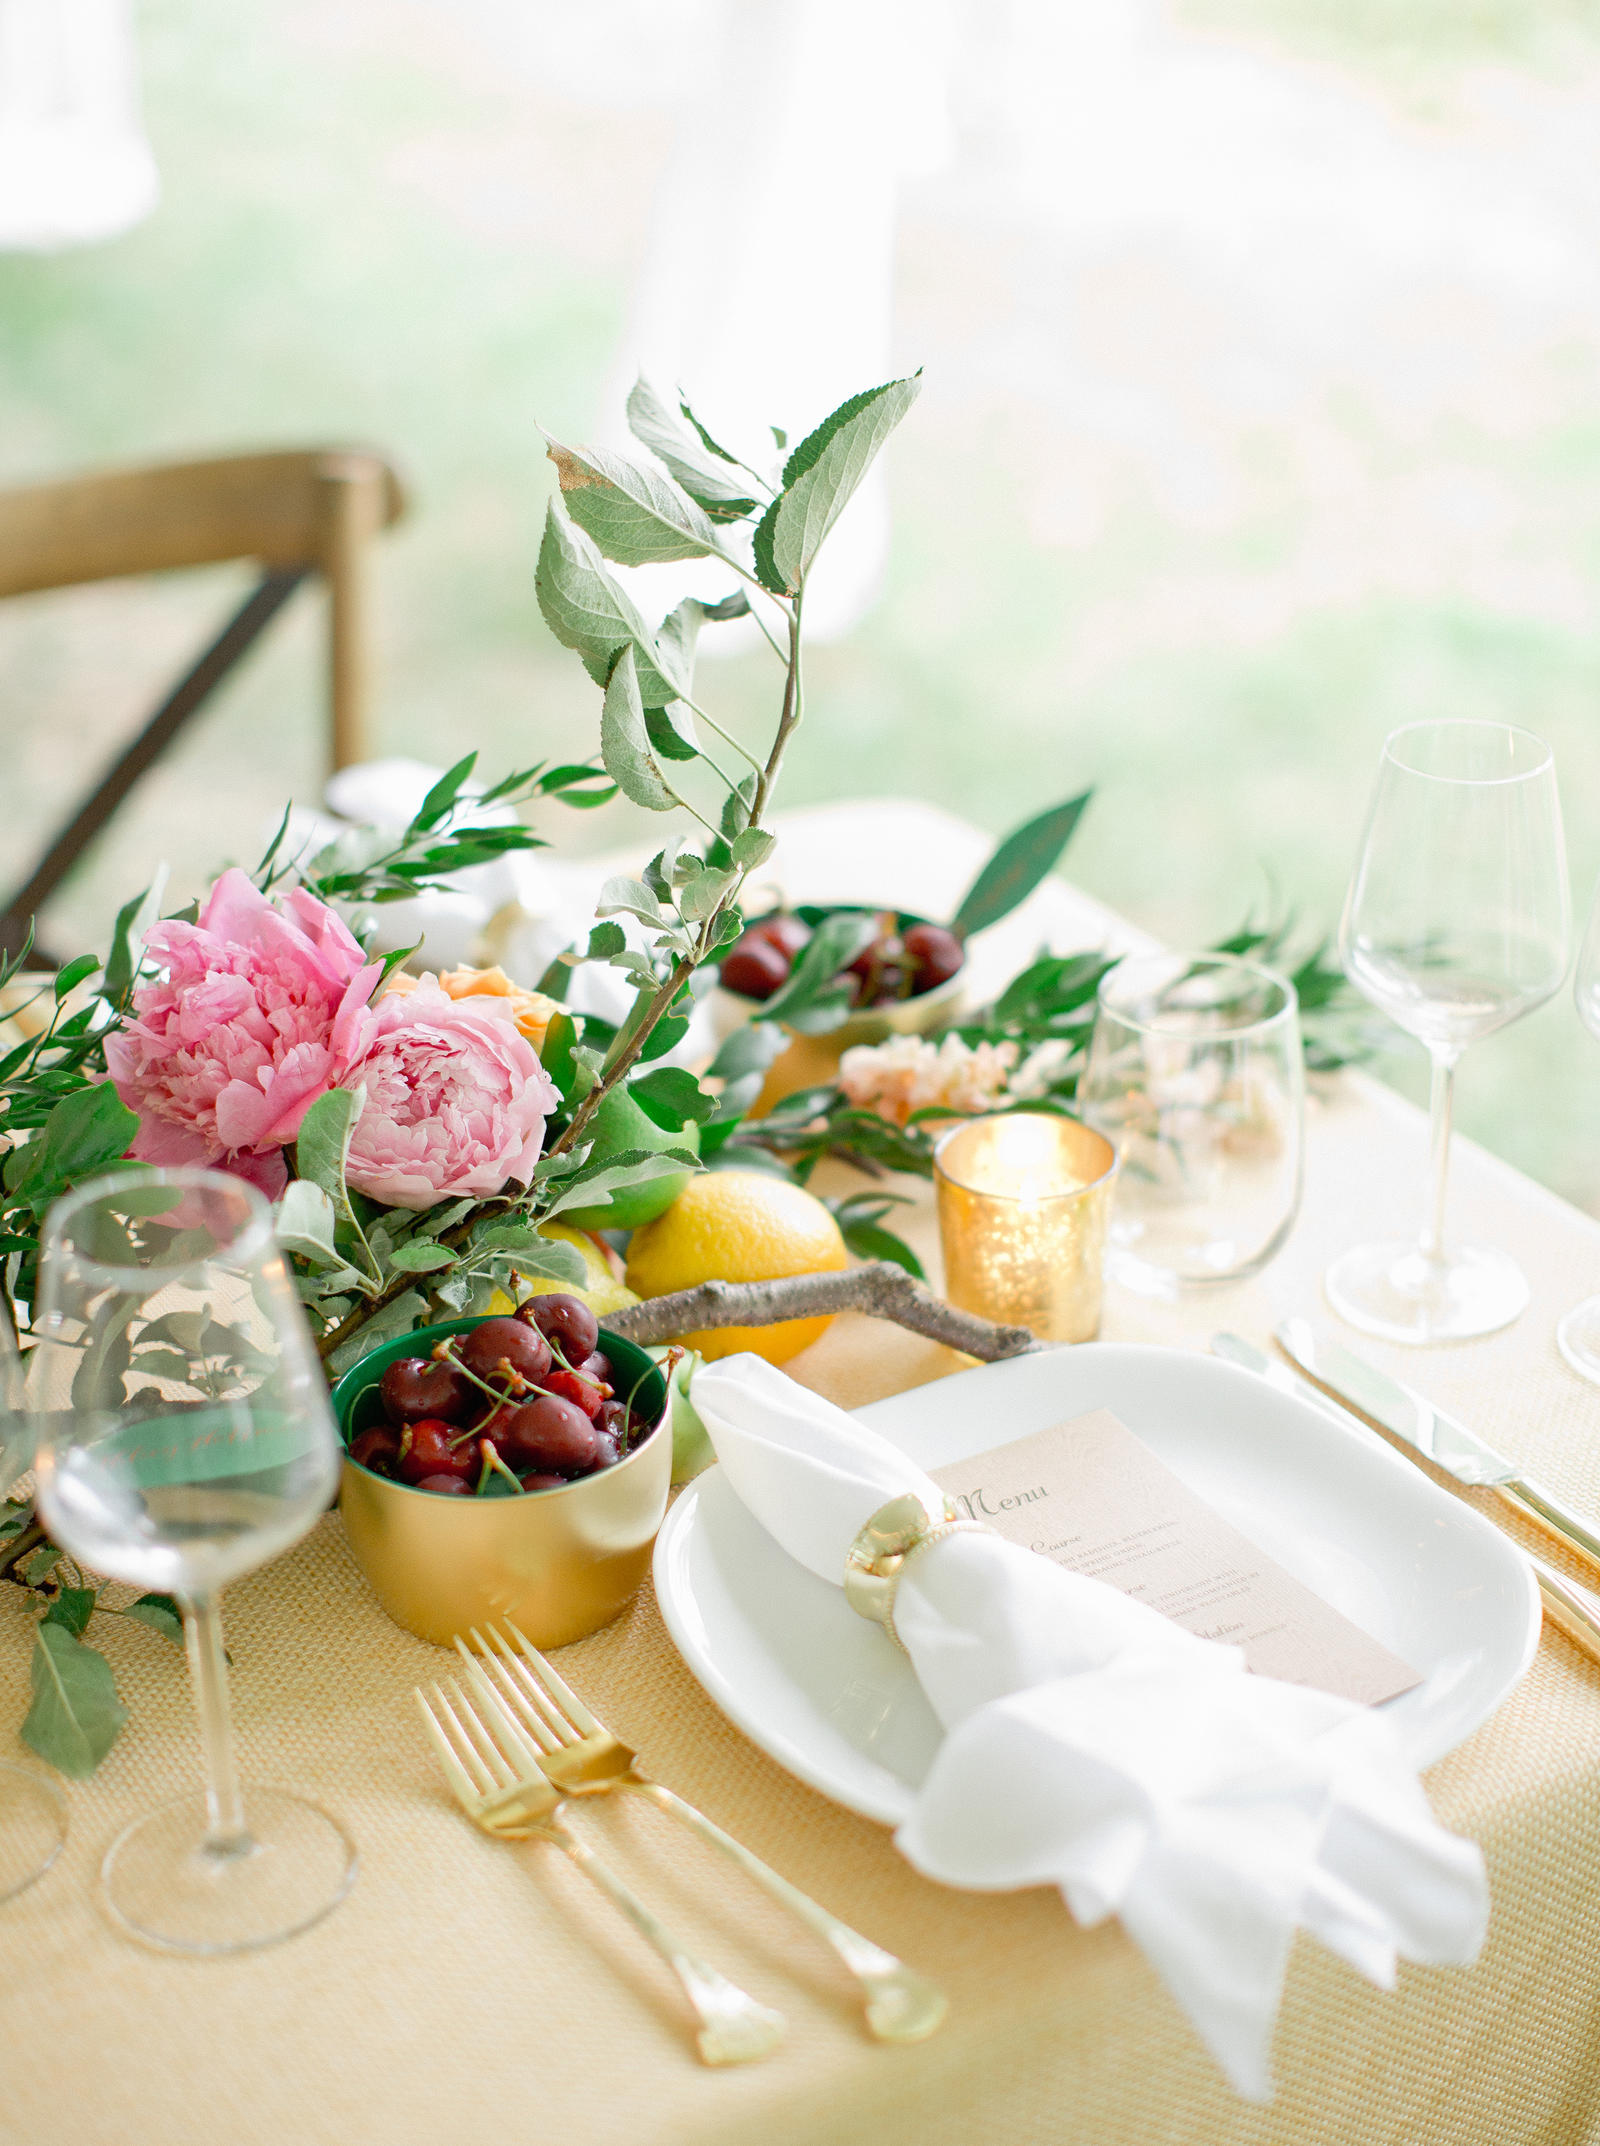 Wedding Photography | A place setting, with a floral, fruit arangement as the centerpiece.